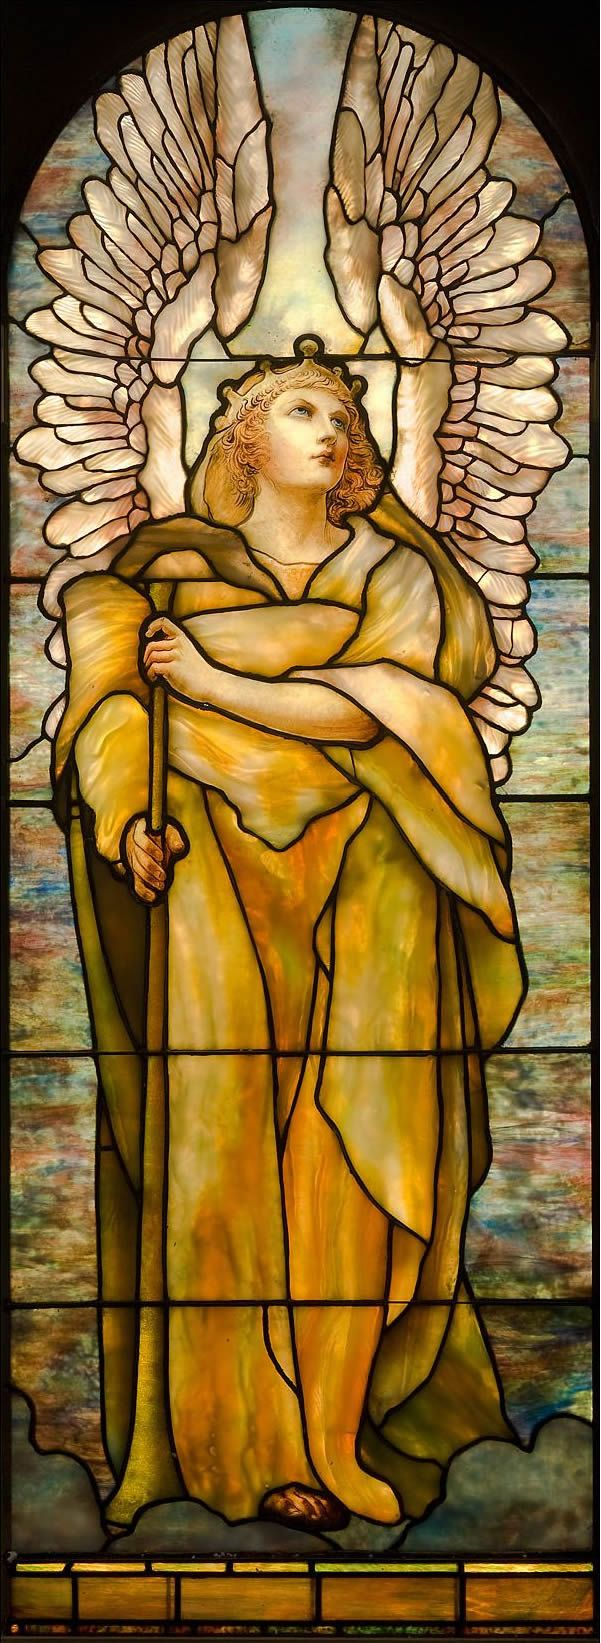 """The Angel of the Resurrection"" window, designed by Frederick Wilson in 1904-5, was installed at the American Presbyterian Church in Montreal."